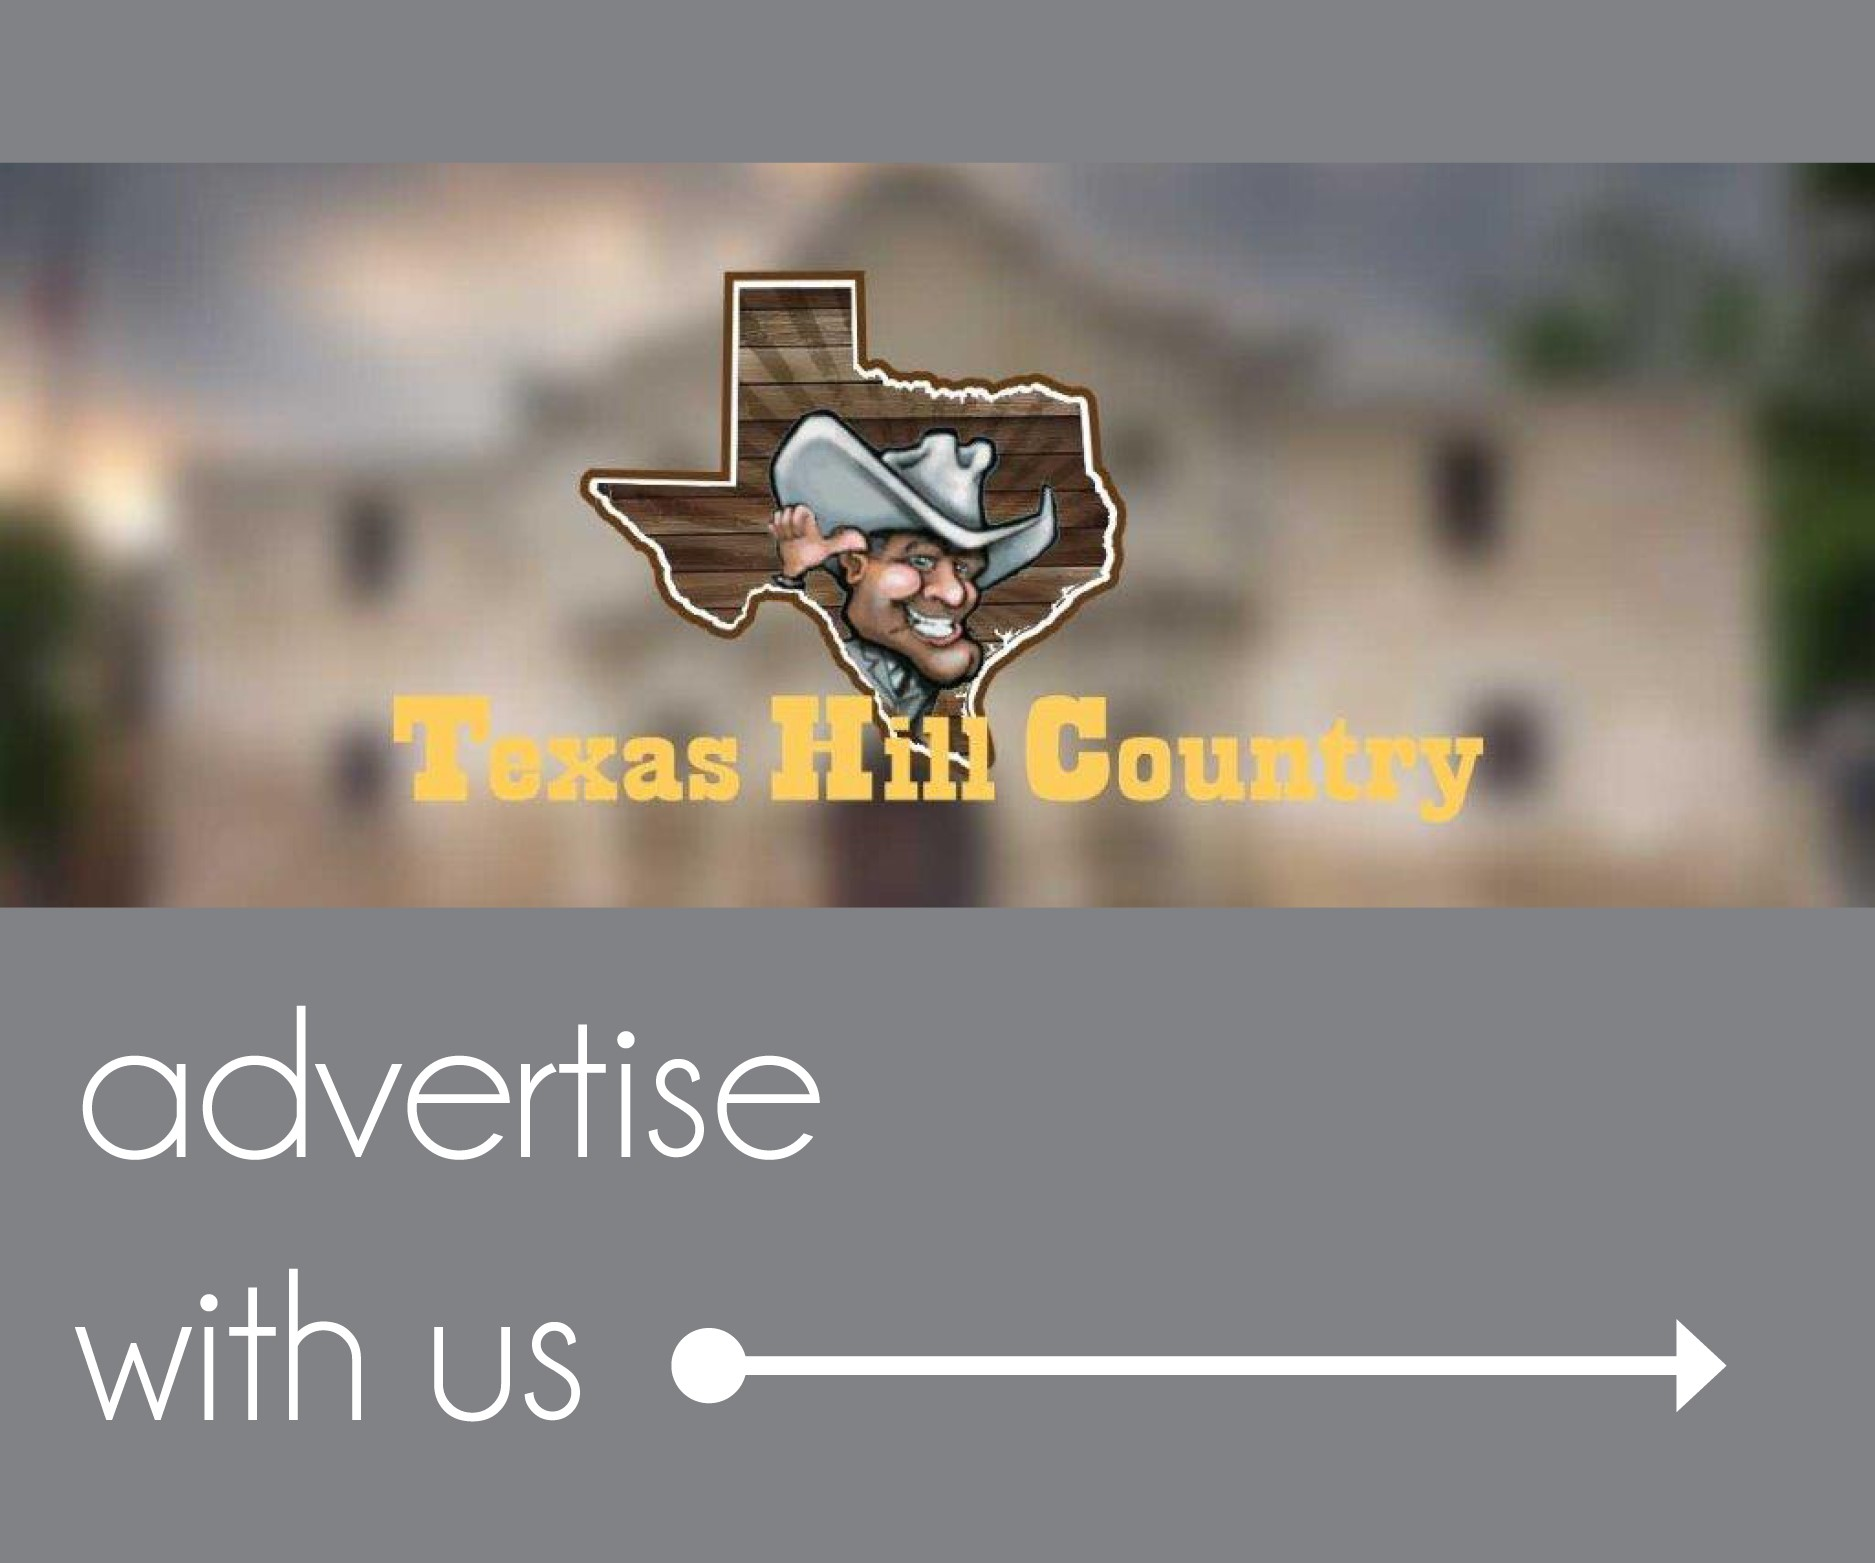 www.texashillcountry.com